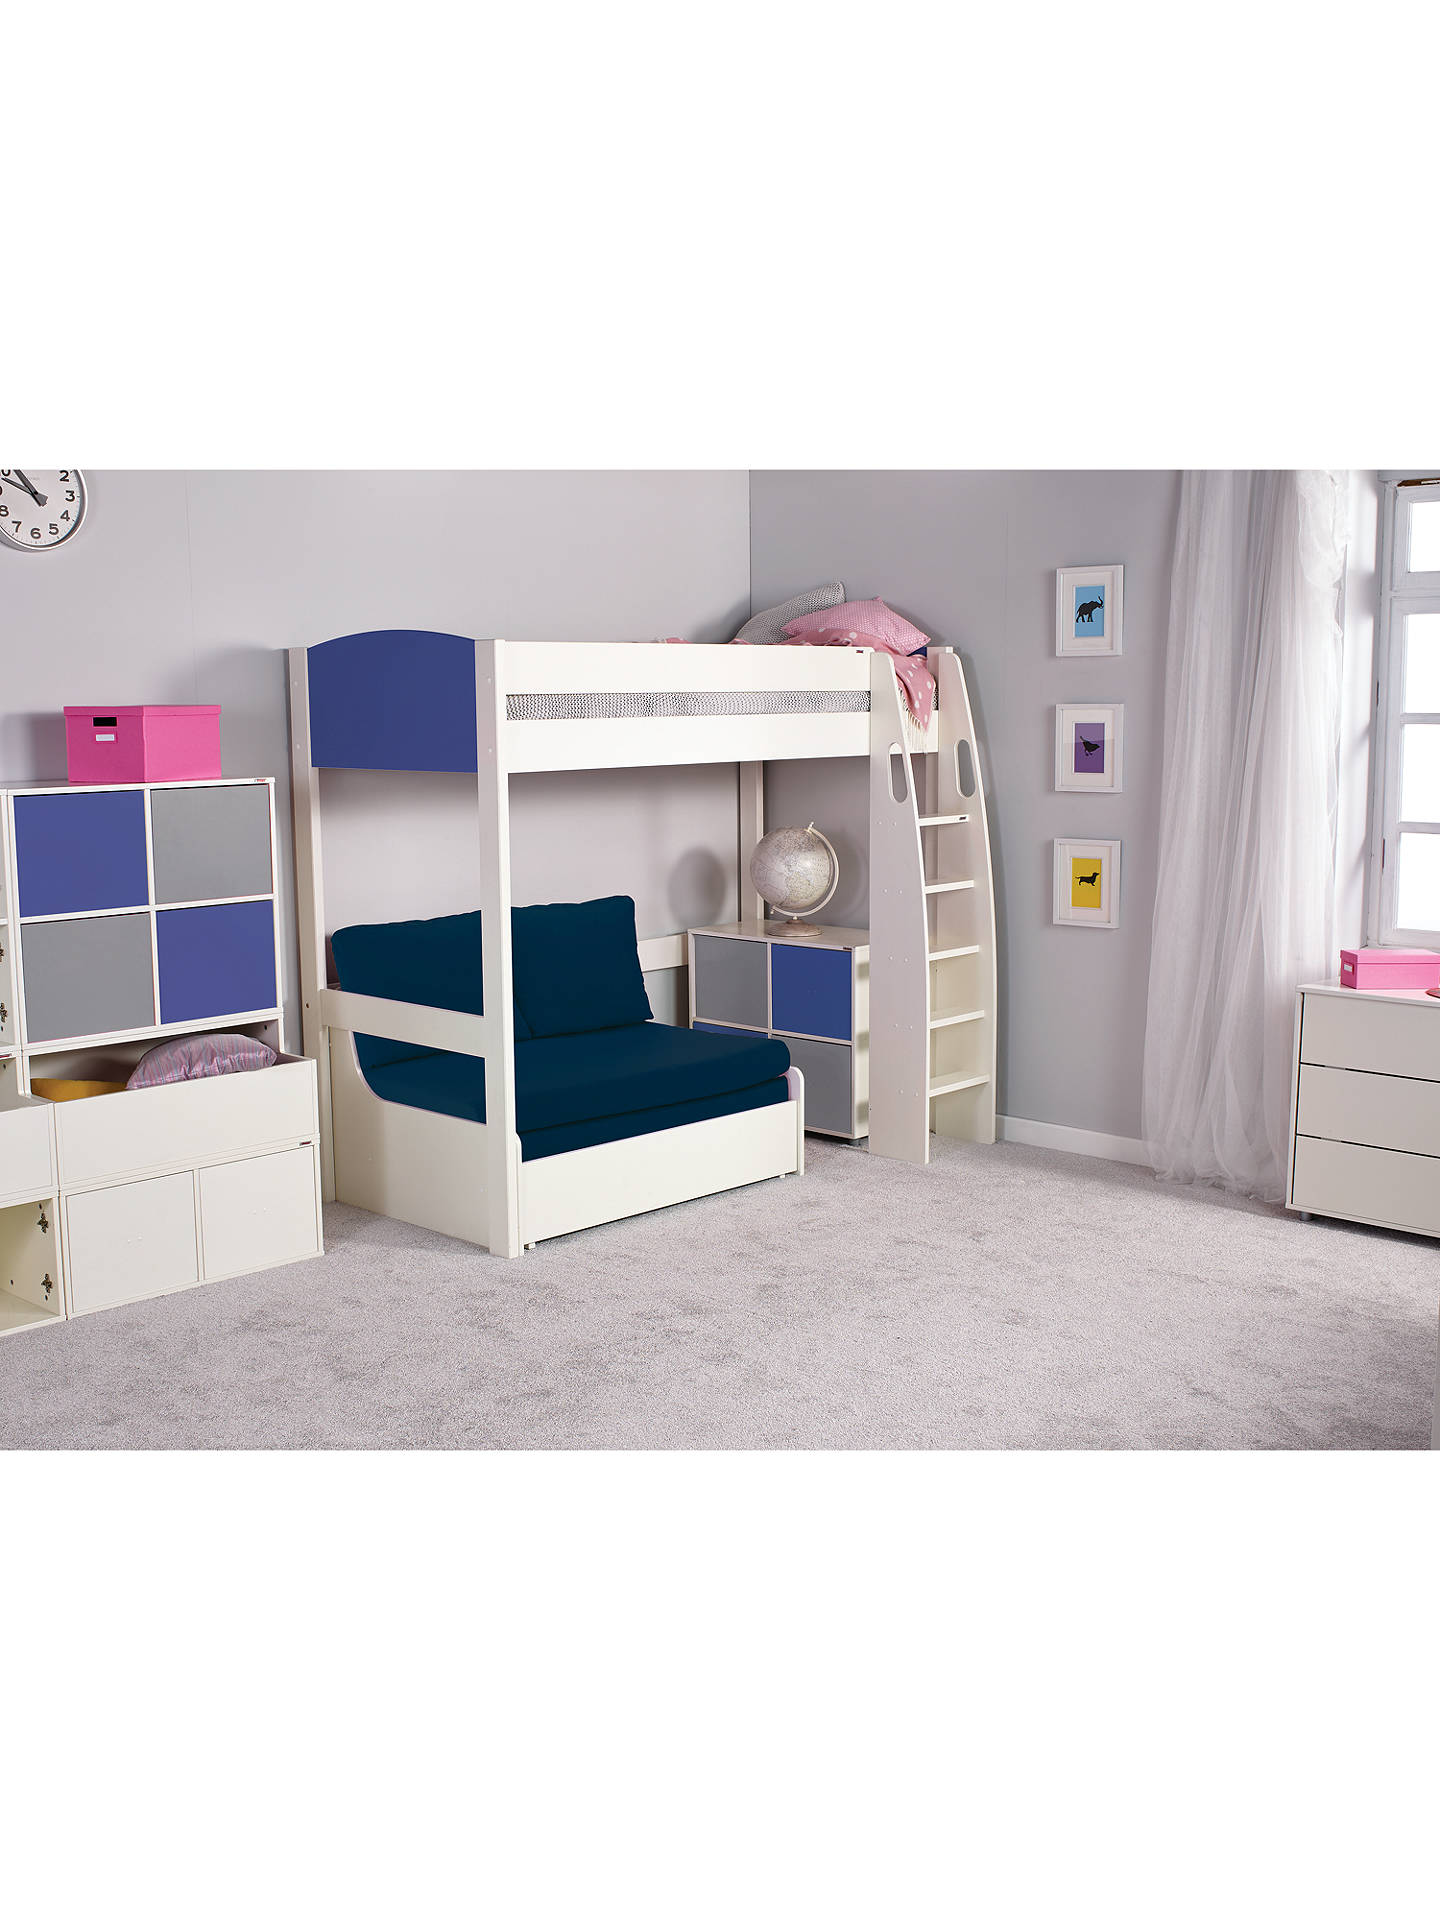 Sensational Stompa Uno S Plus Double Chair Bed At John Lewis Partners Theyellowbook Wood Chair Design Ideas Theyellowbookinfo